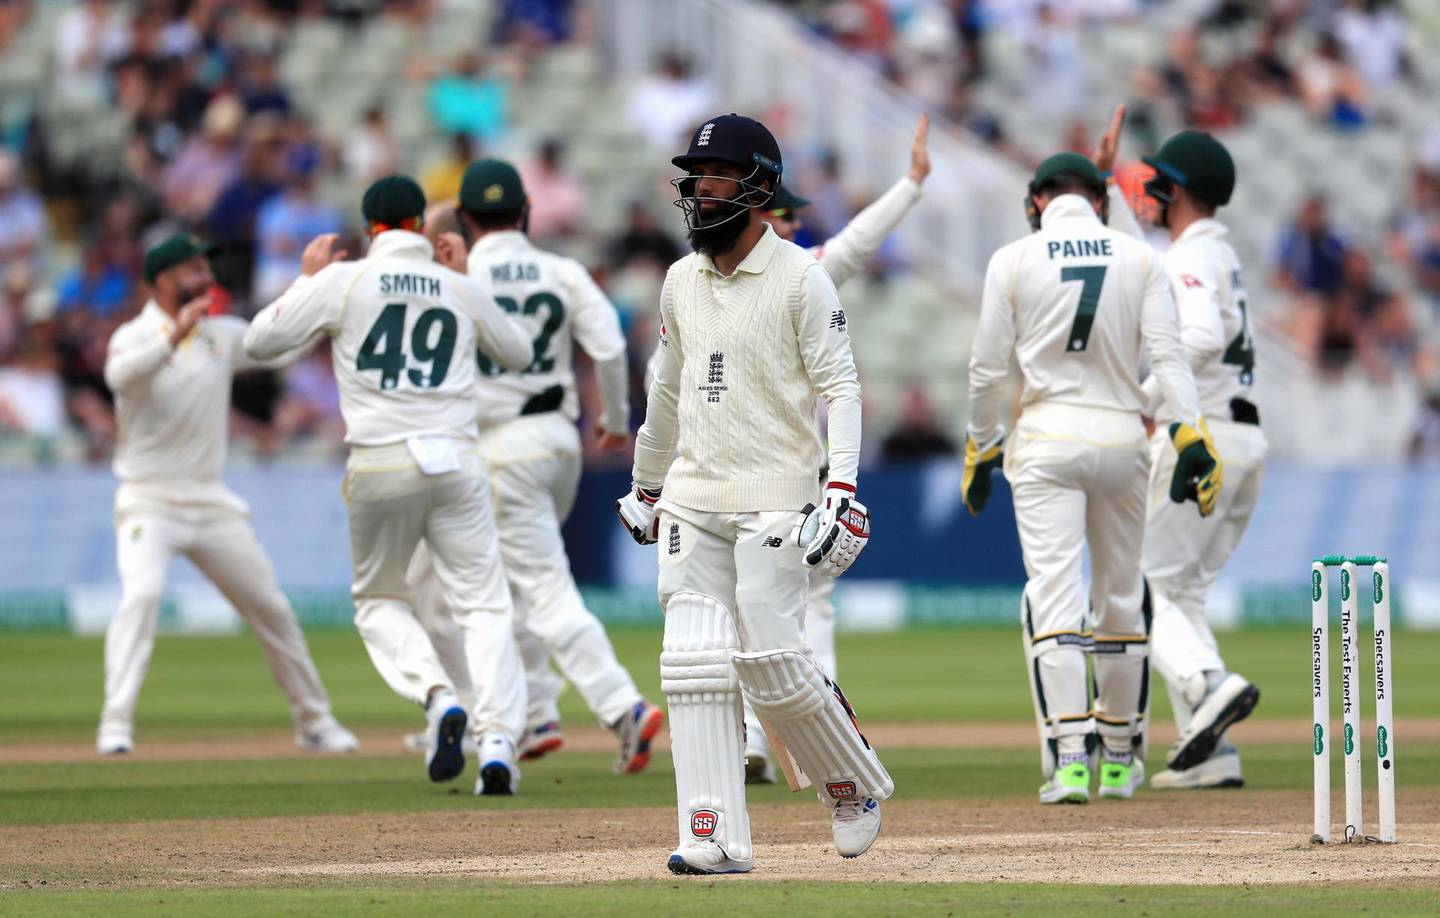 England's Moeen Ali reacts after his dismissal during day five of the Ashes Test match at Edgbaston, Birmingham. PRESS ASSOCIATION Photo. Picture date: Monday August 5, 2019. See PA story CRICKET England. Photo credit should read: Mike Egerton/PA Wire. RESTRICTIONS: Editorial use only. No commercial use without prior written consent of the ECB. Still image use only. No moving images to emulate broadcast. No removing or obscuring of sponsor logos